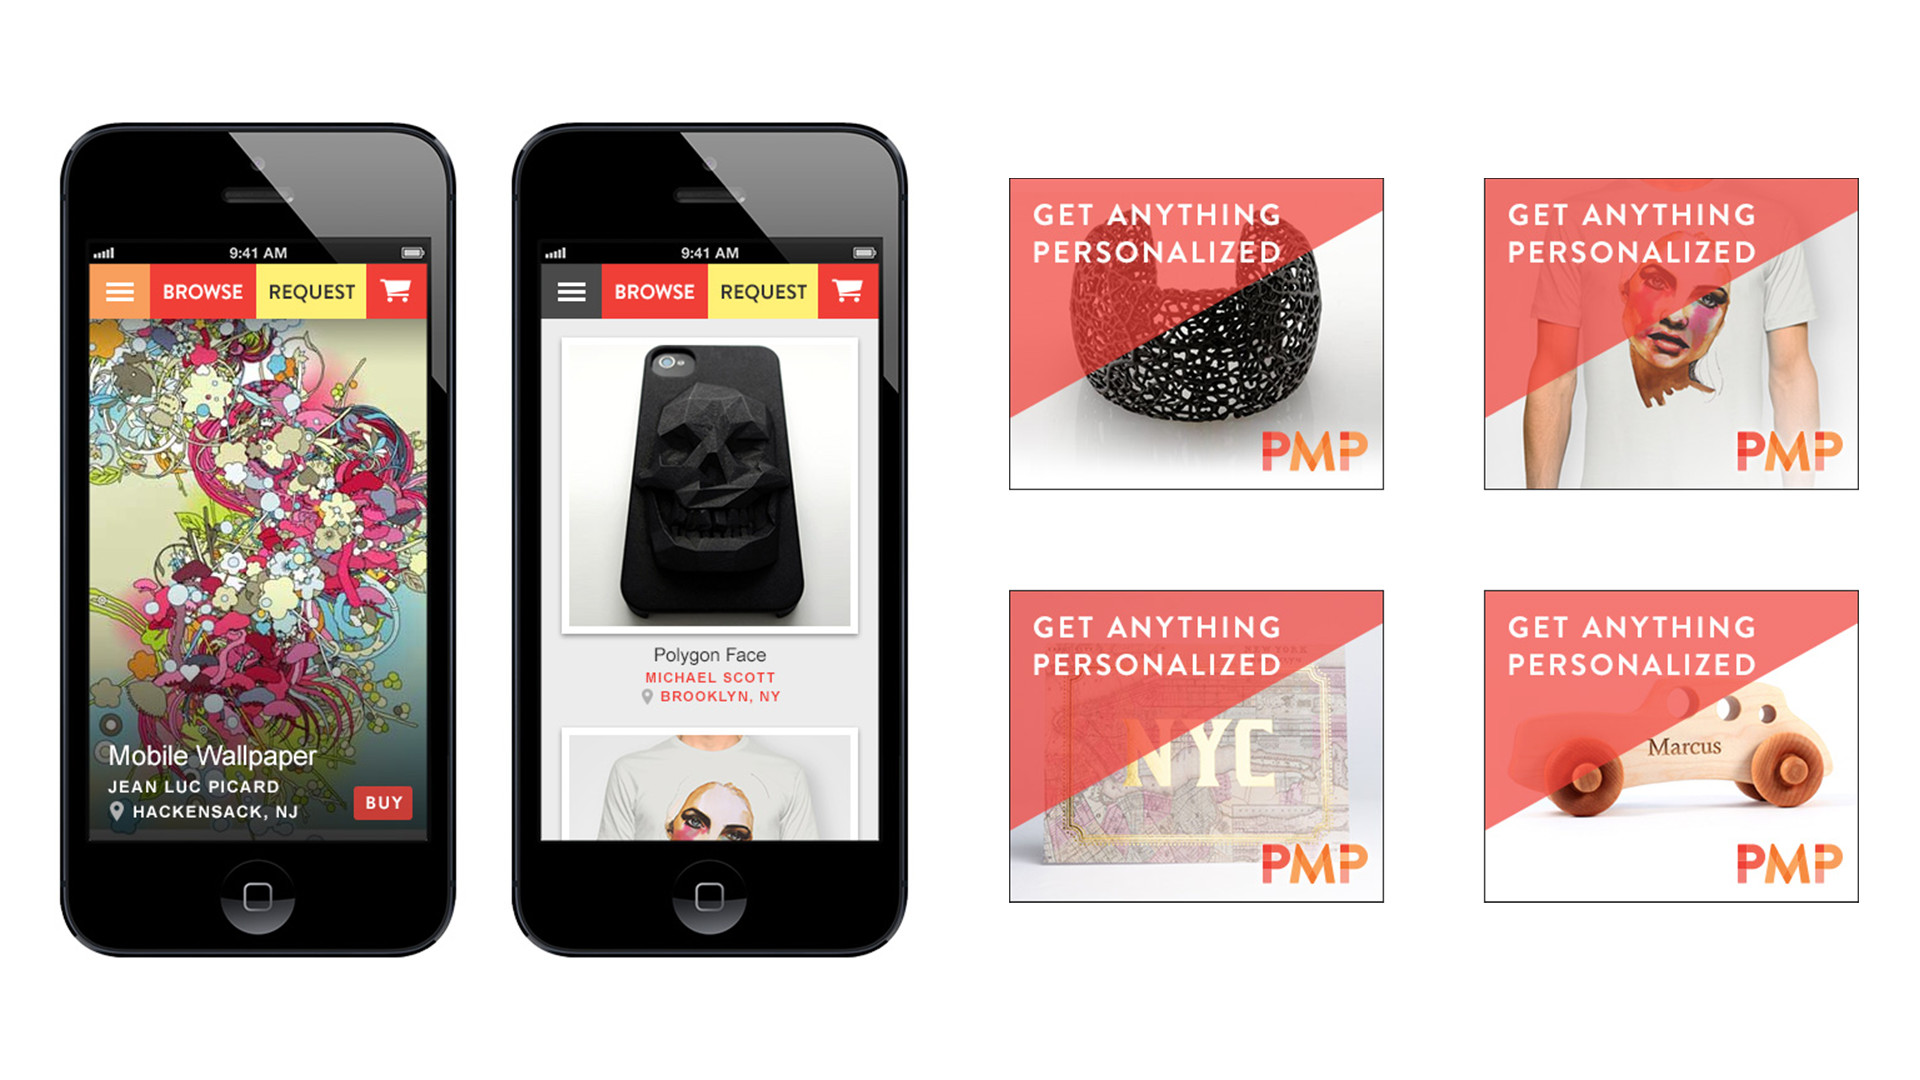 Examples of the platform on mobile and as display ads.